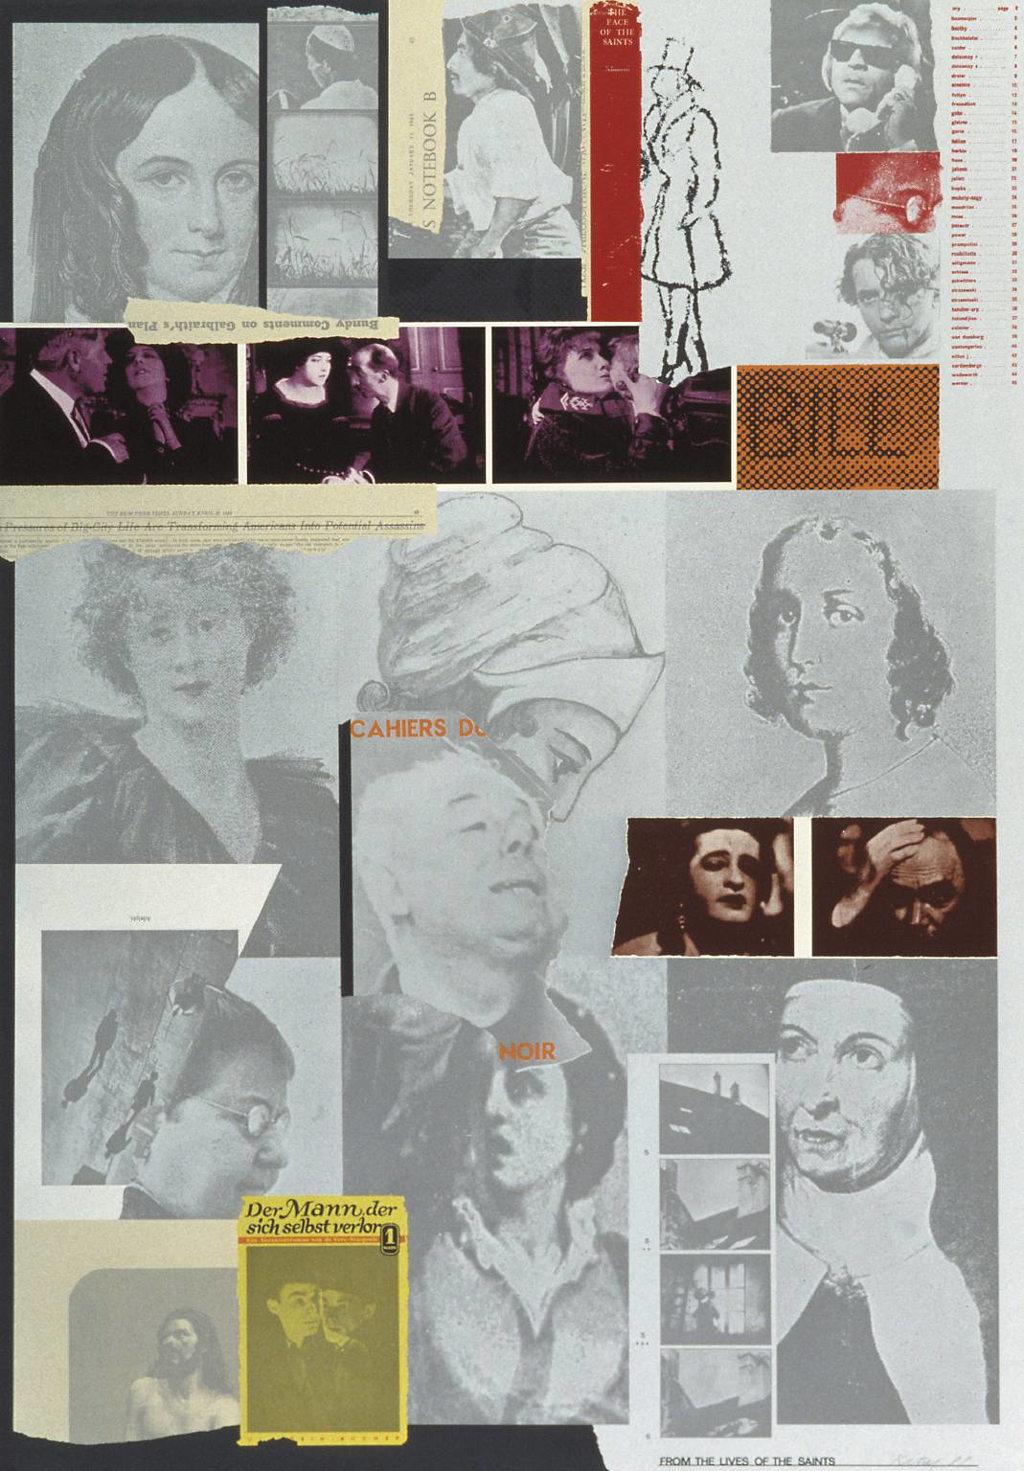 From the Lives of the Saints by R.B. (Ronald Brooks) Kitaj